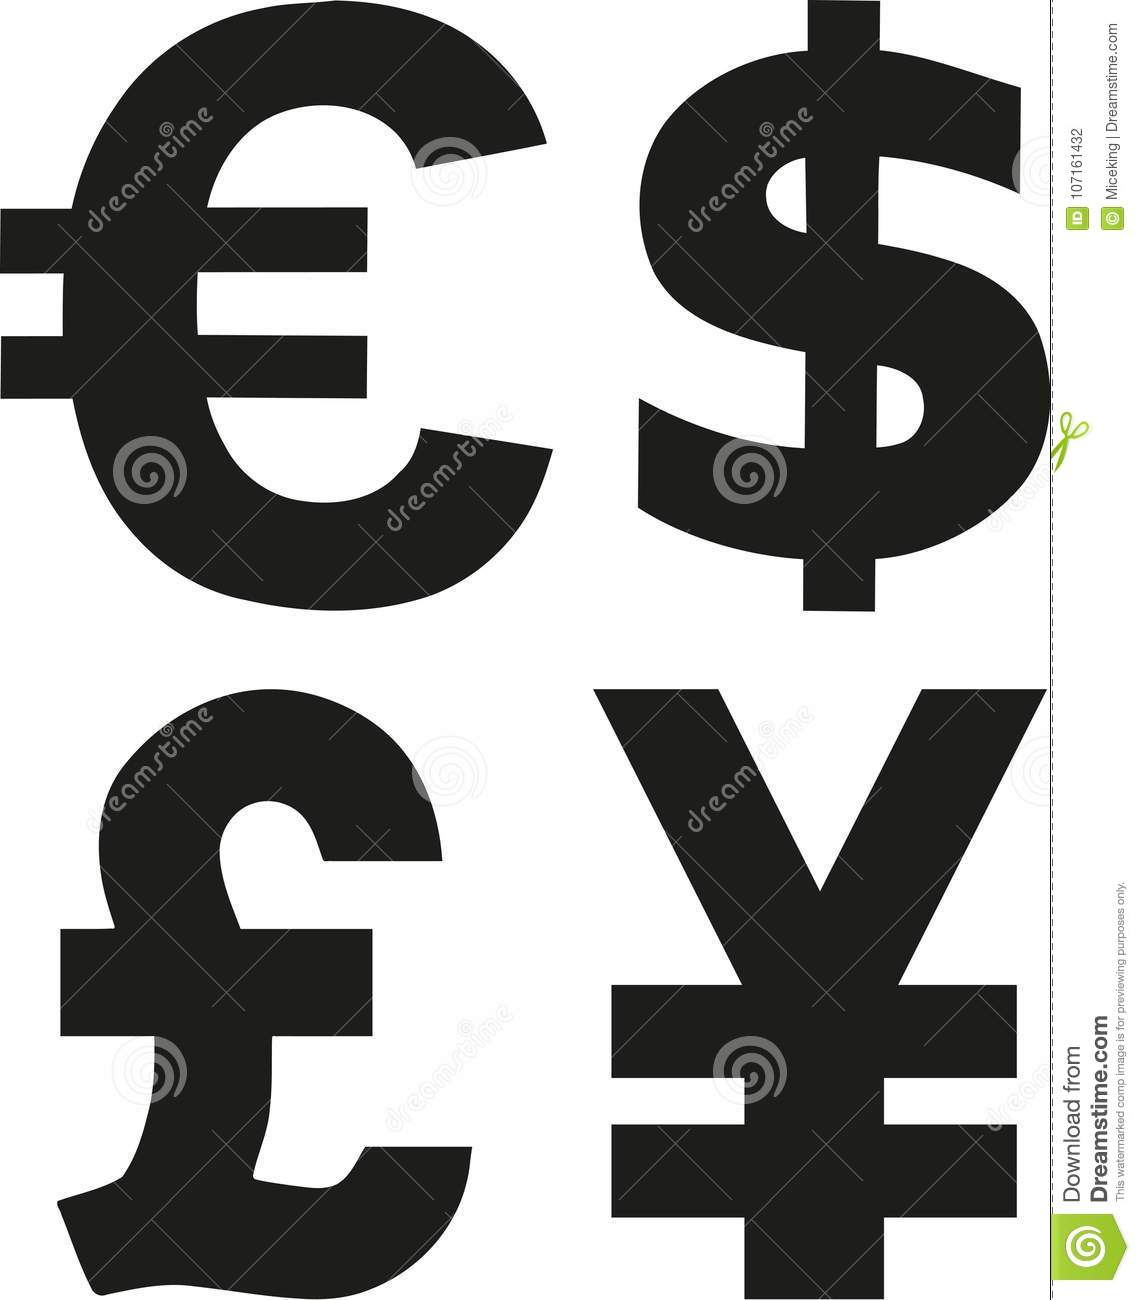 Currency Symbols Vector Stock Vector Illustration Of Bank 107161432